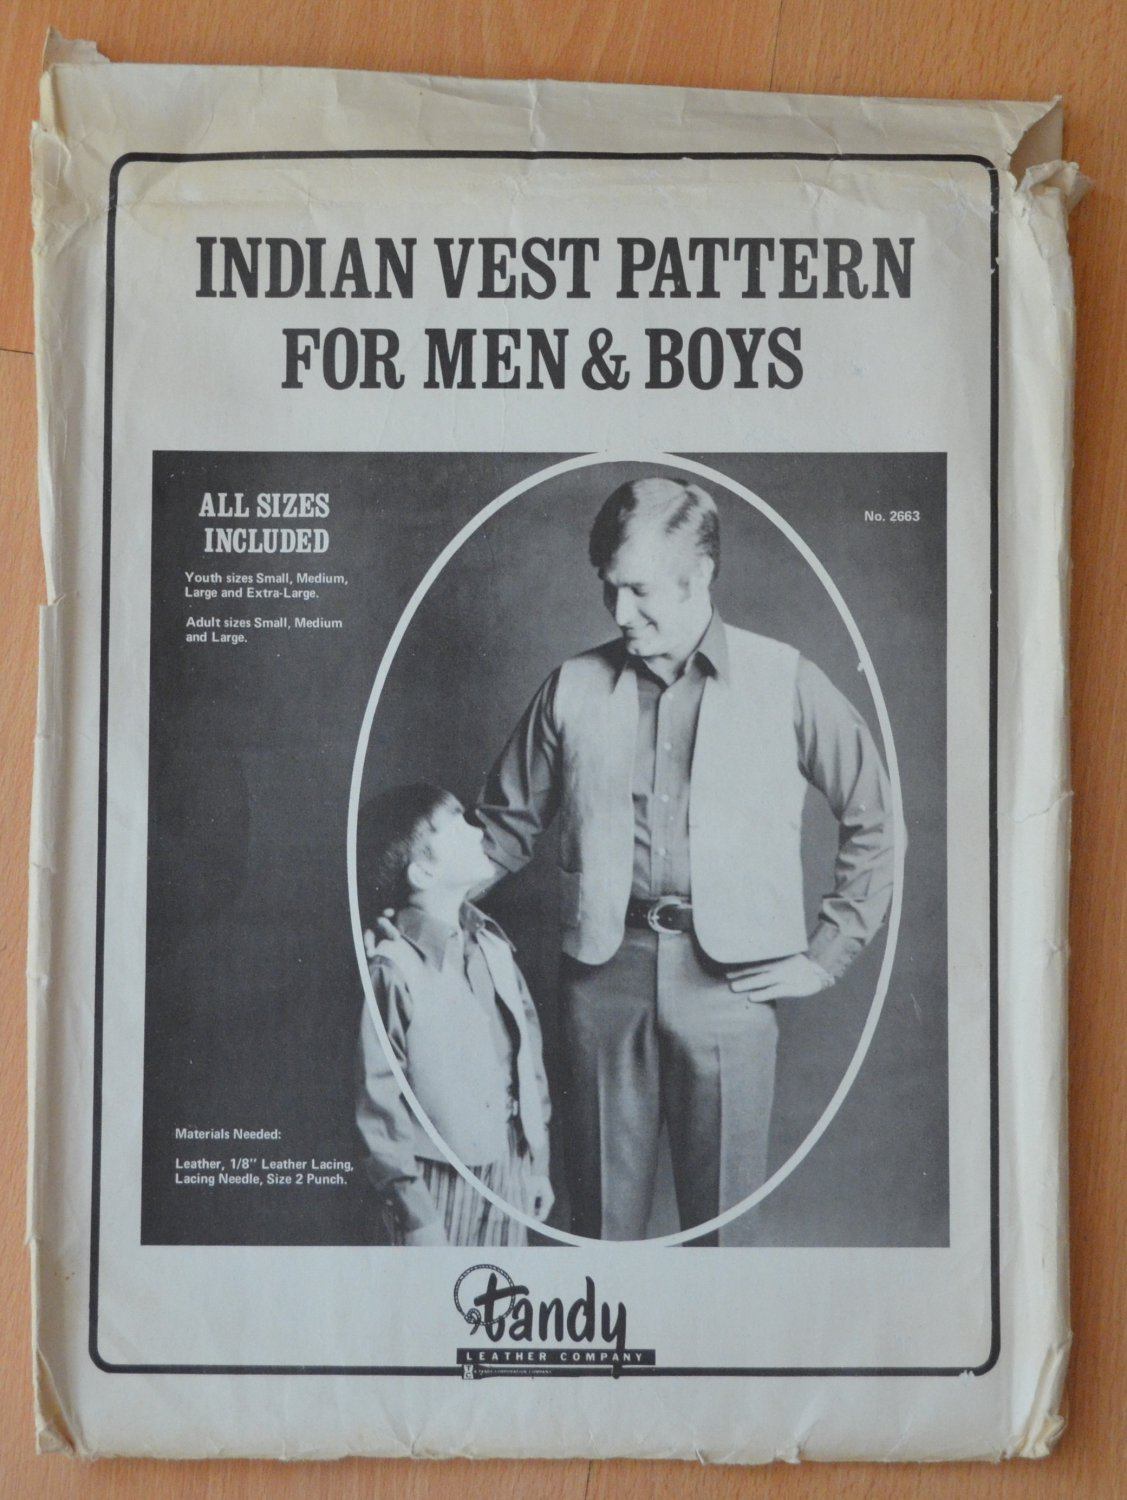 Tandy Leather Indian Vest Pattern Men Boys Vintage 2663 All Sizes